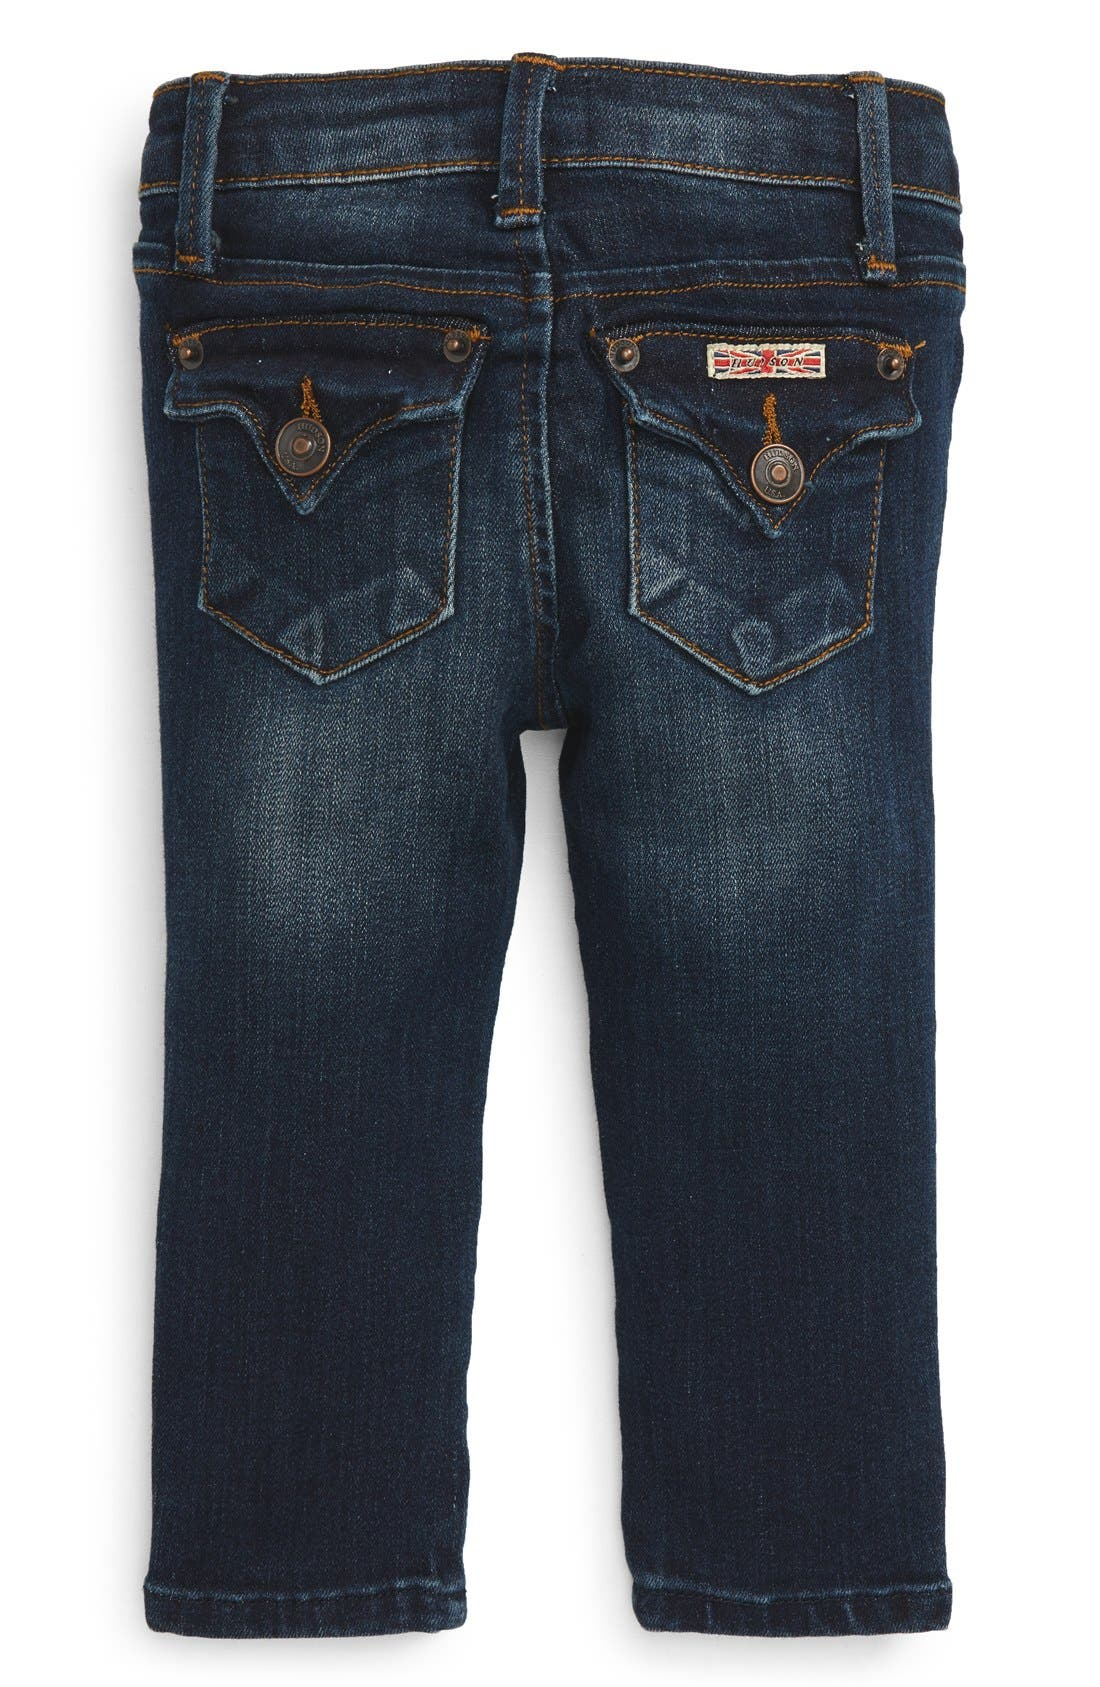 Hudson 'Collin' Skinny Jeans,                             Main thumbnail 1, color,                             480